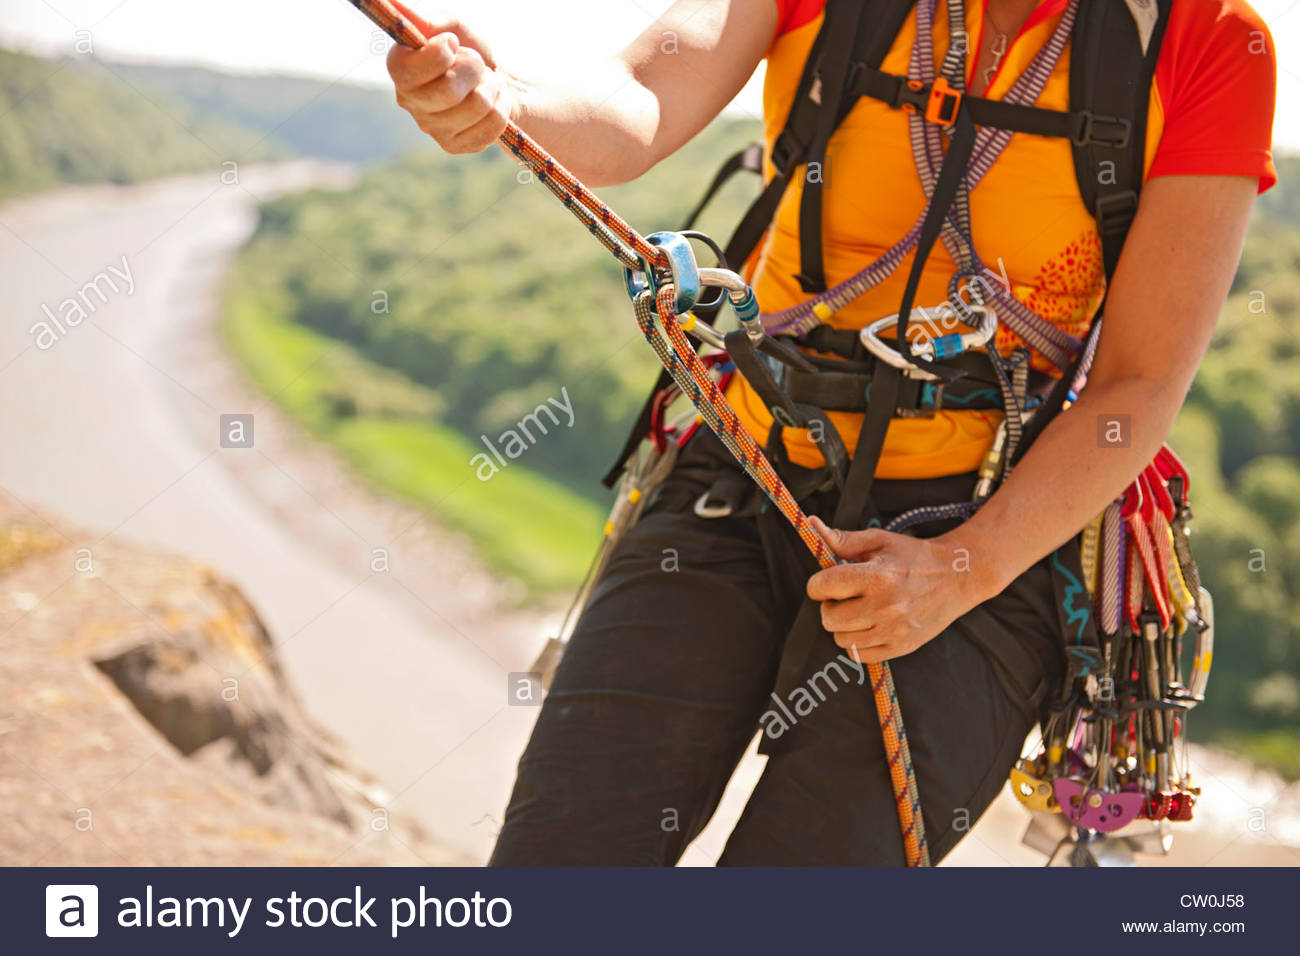 Climbers carabiners and bungee cord - Stock Image